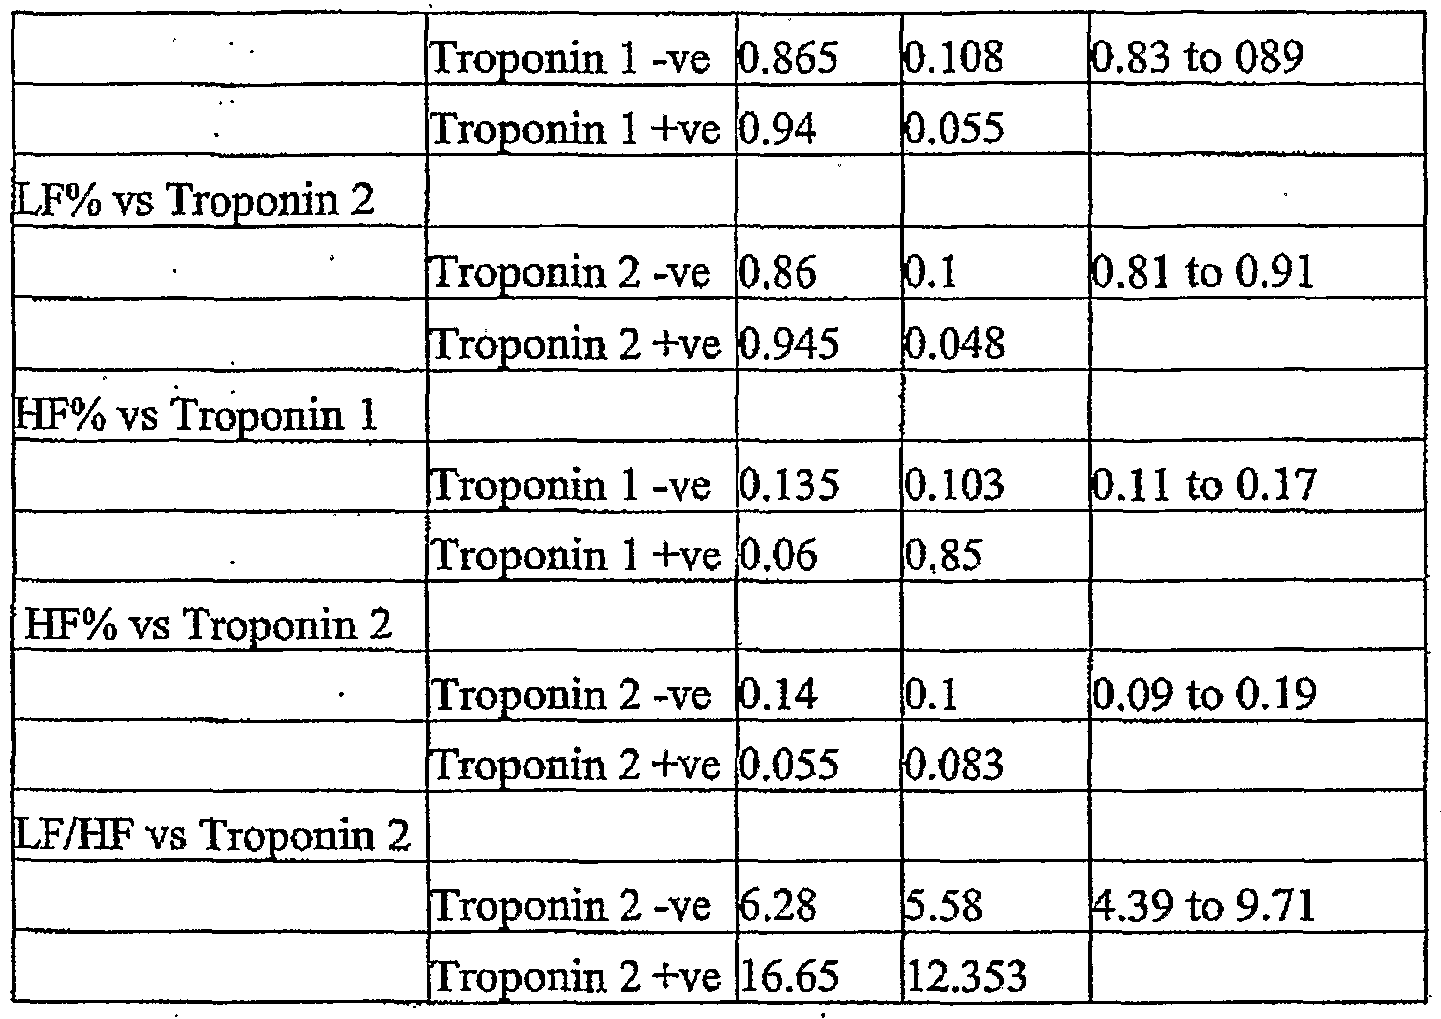 What is the normal range of troponin levels?